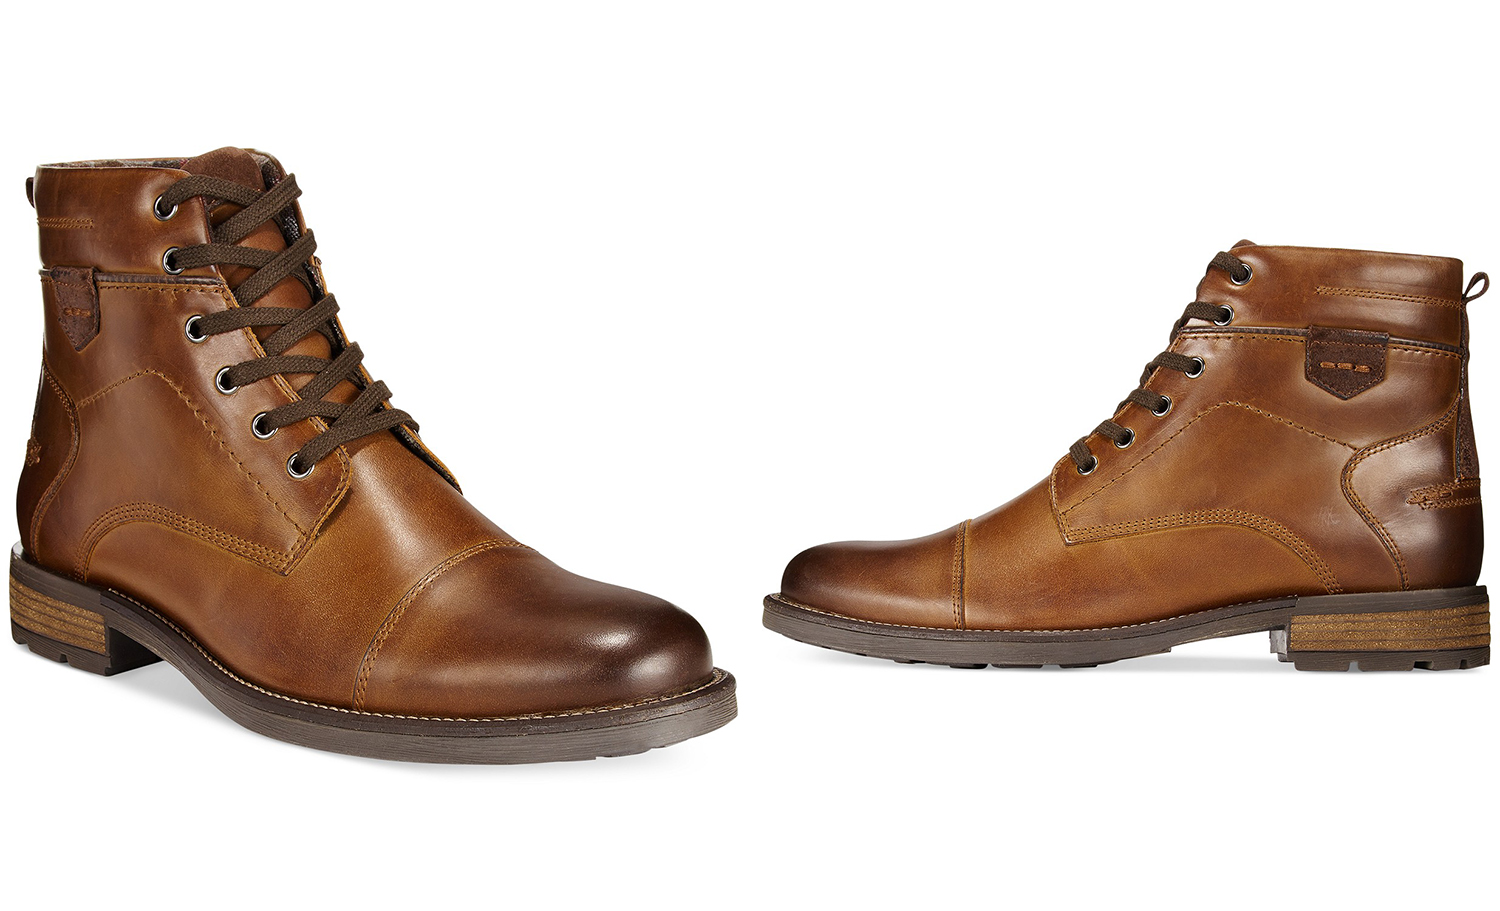 Save An Extra 30% On These Boots At